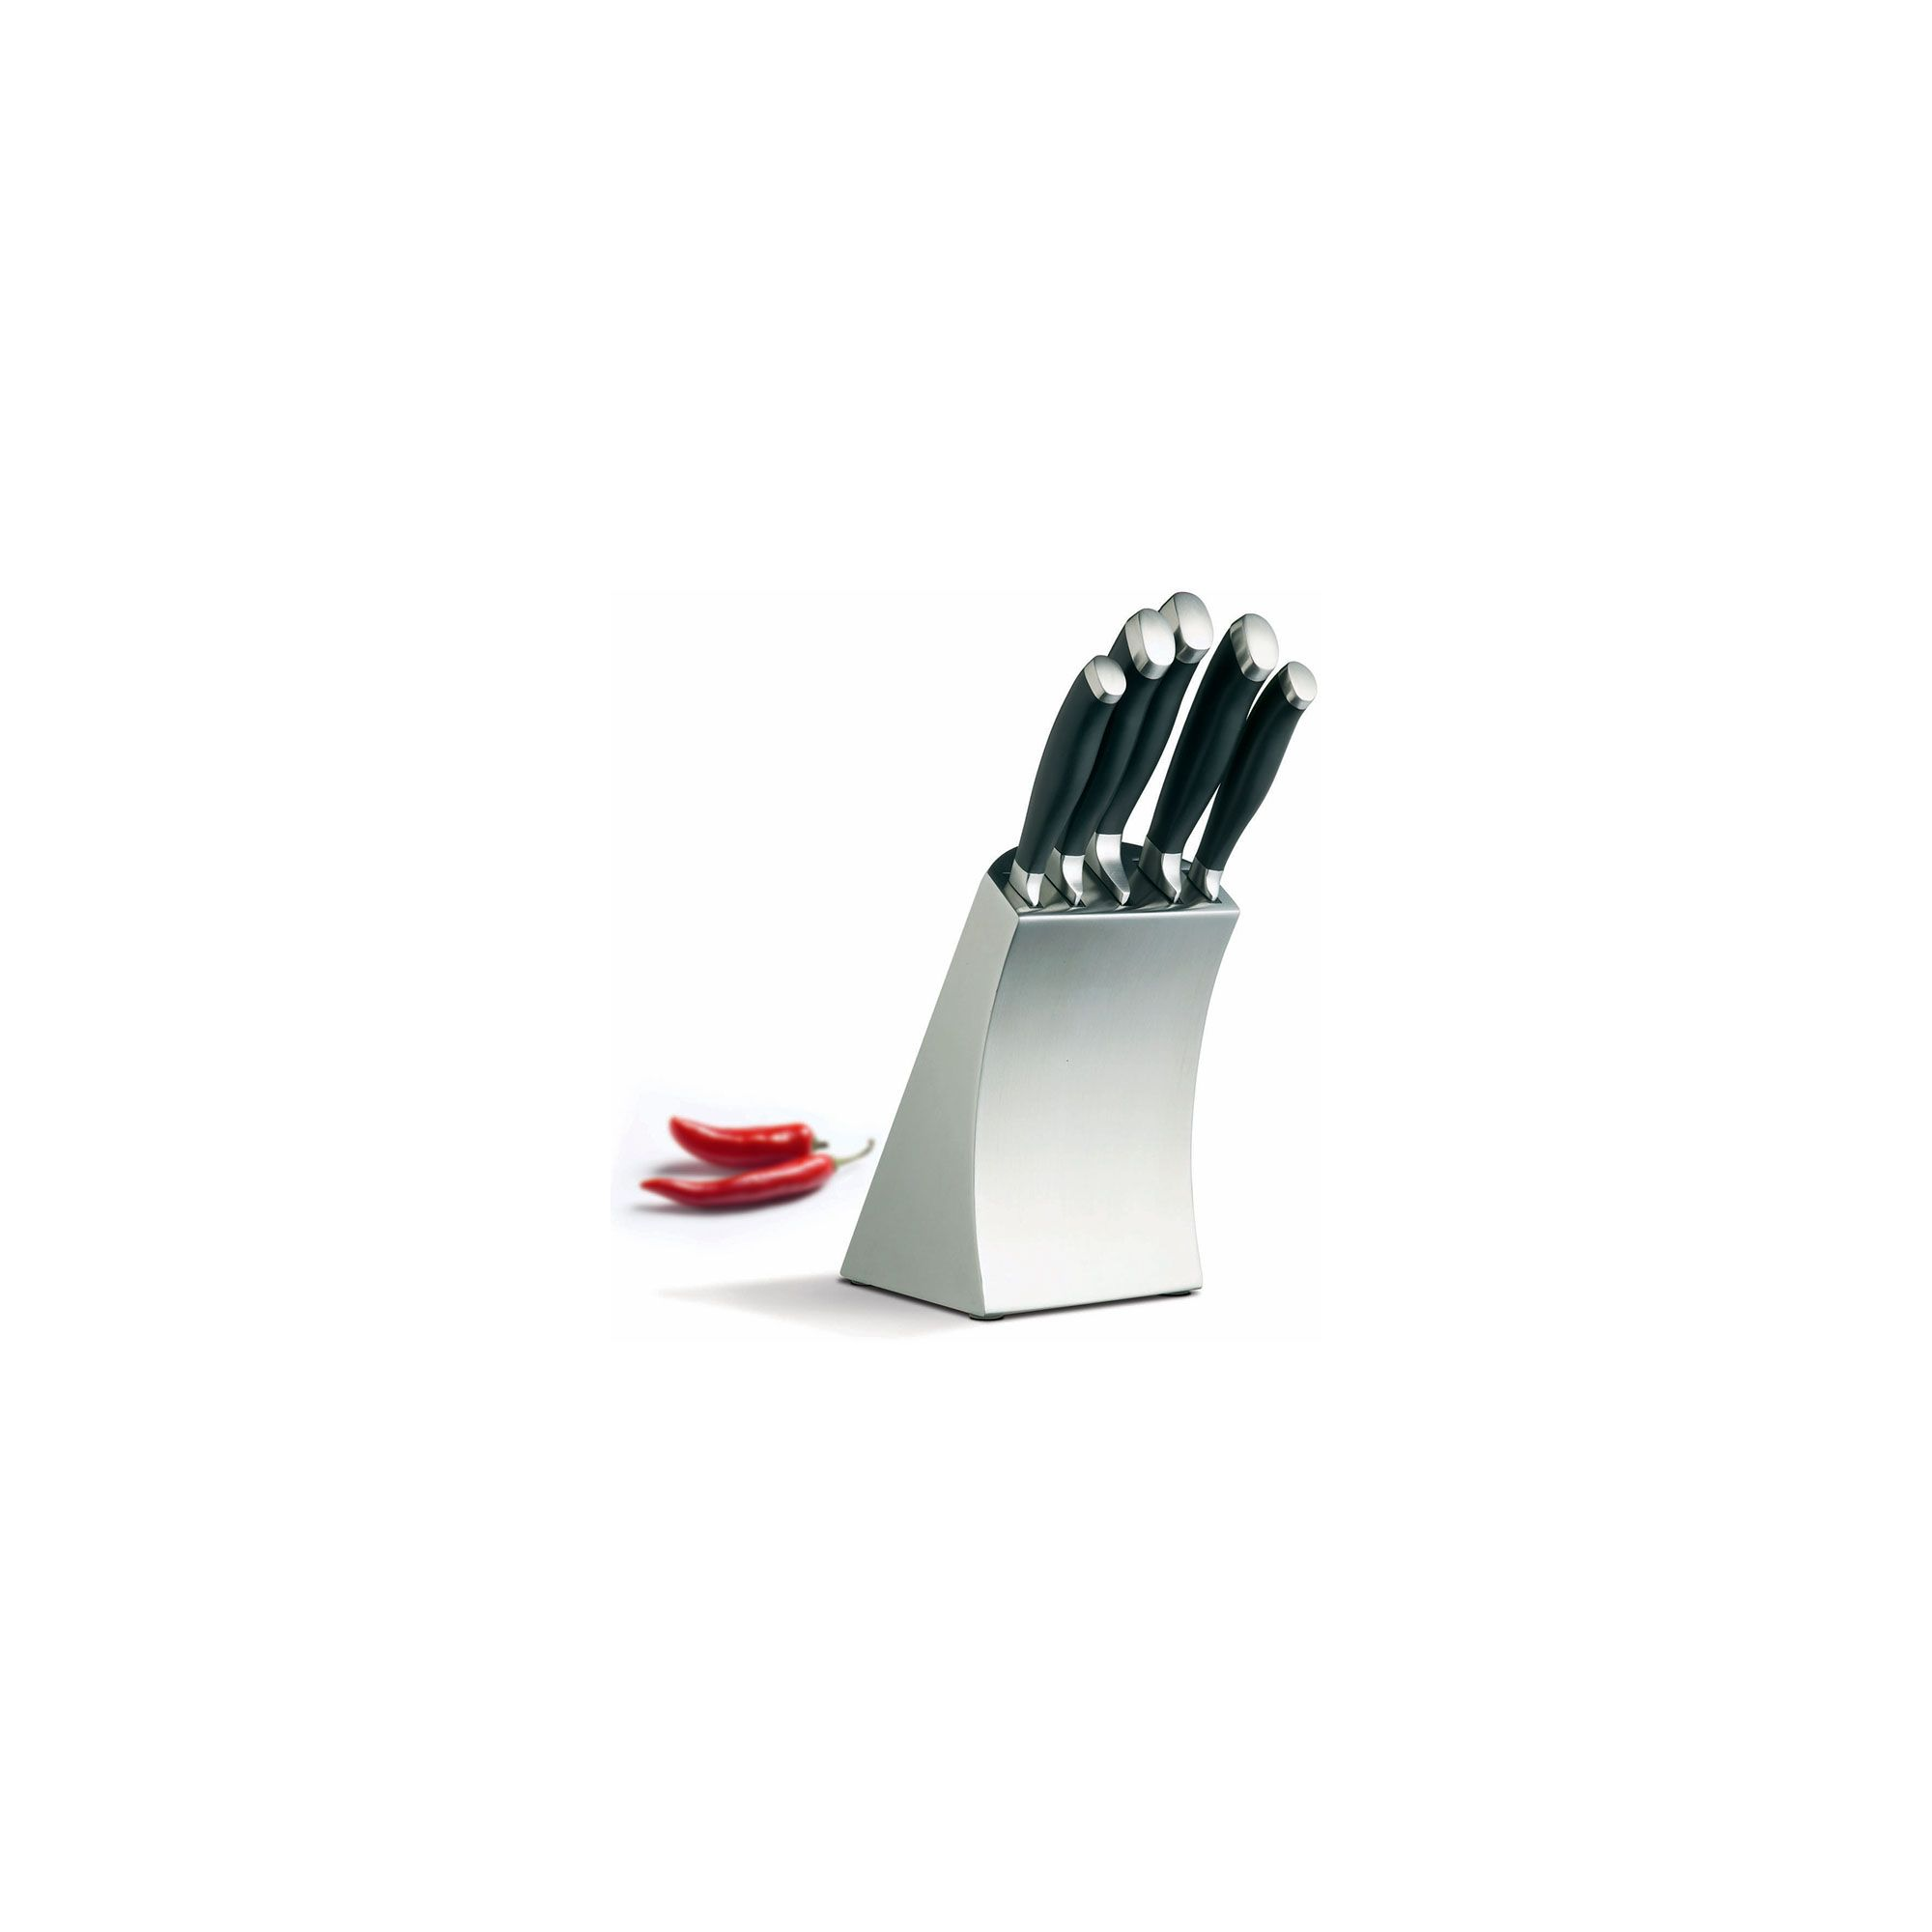 100 kitchen devil knives homify computernow tesco 28 100 for Kitchen devil knife set 9